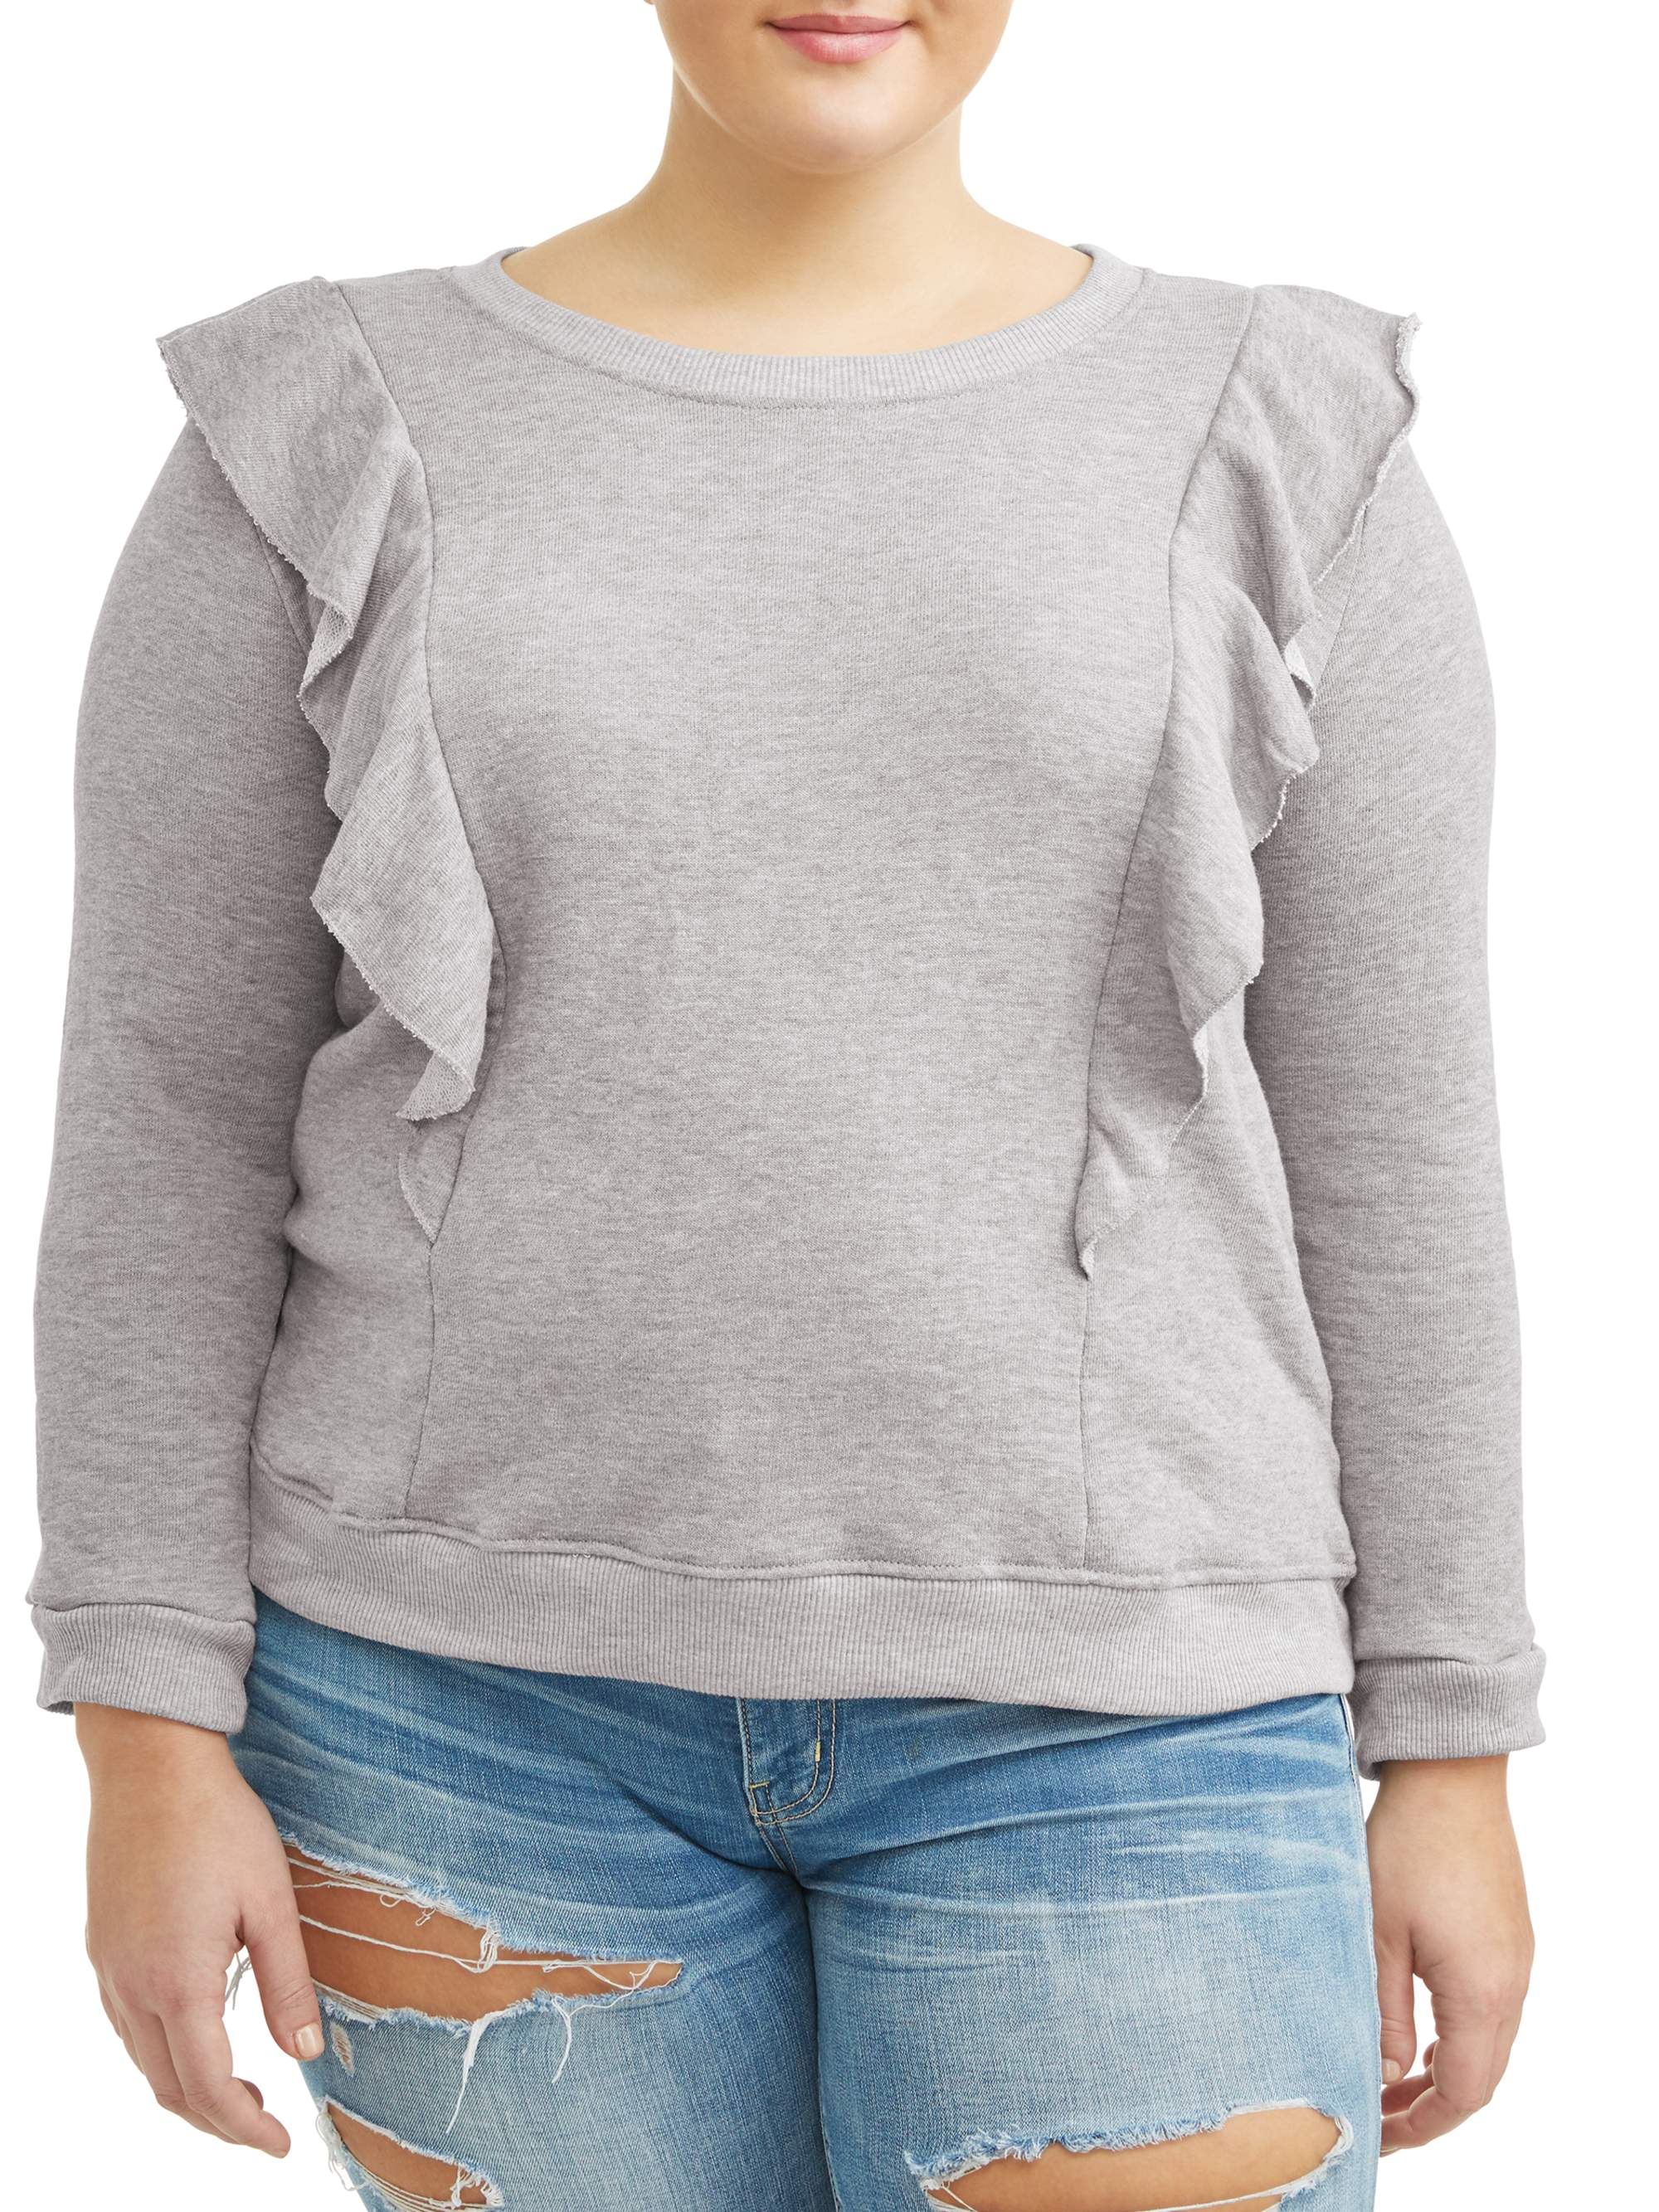 Juniors' Plus Size Scoop Neck Long Sleeve Sweatshirt with Princess Ruffles